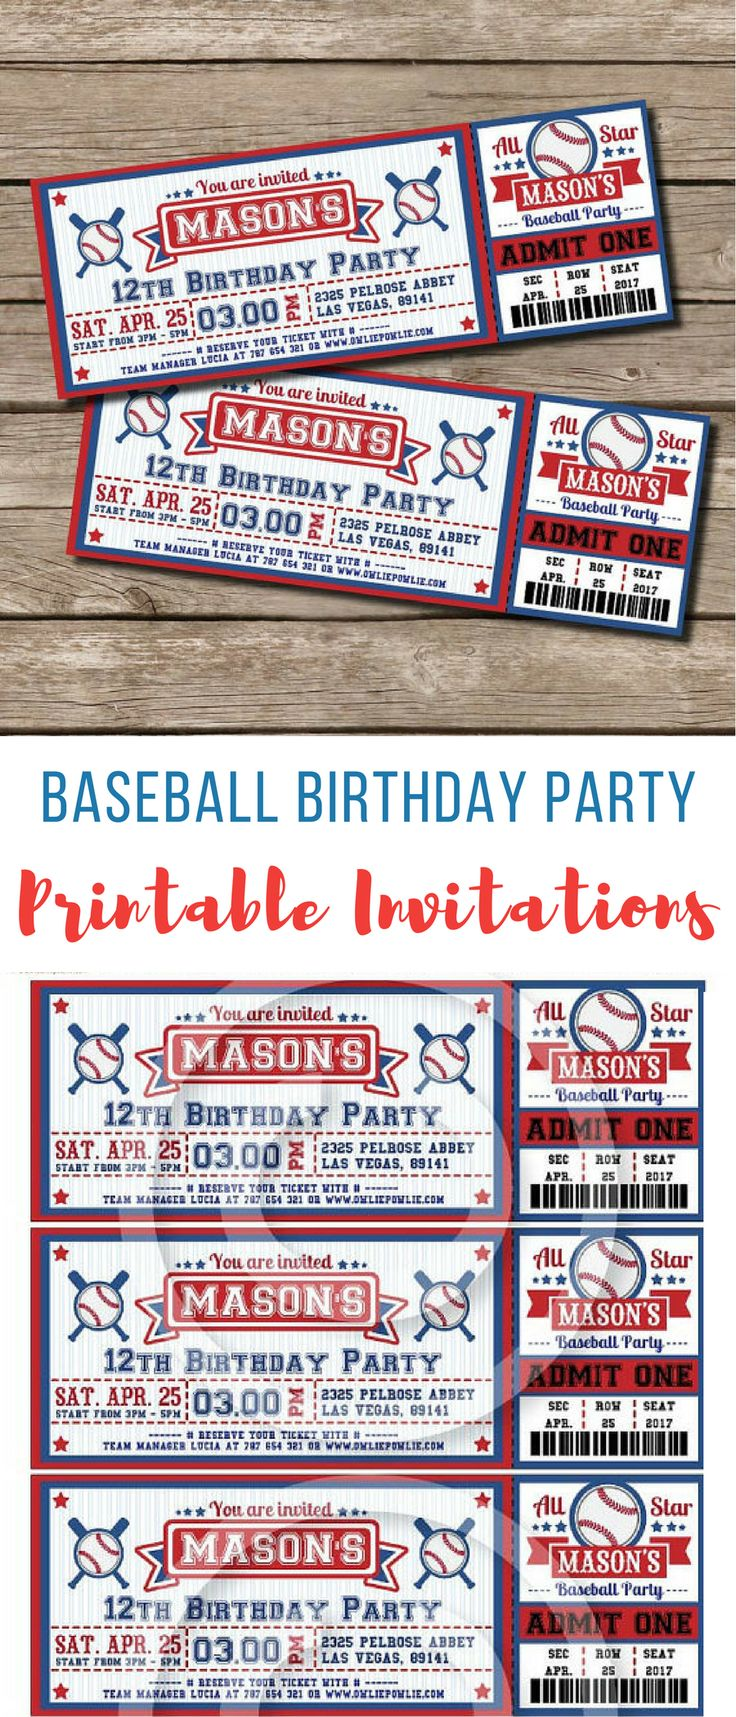 these invitations would be perfect for Noah's baseball party birthday theme, they look so legit like real baseball tickets lol #birthday #birthdayinvitations #printablebirthdayinvitations #baseballbirthdayparty #baseball #printableinvitations #boysbirthdaypartyideas #affiliate